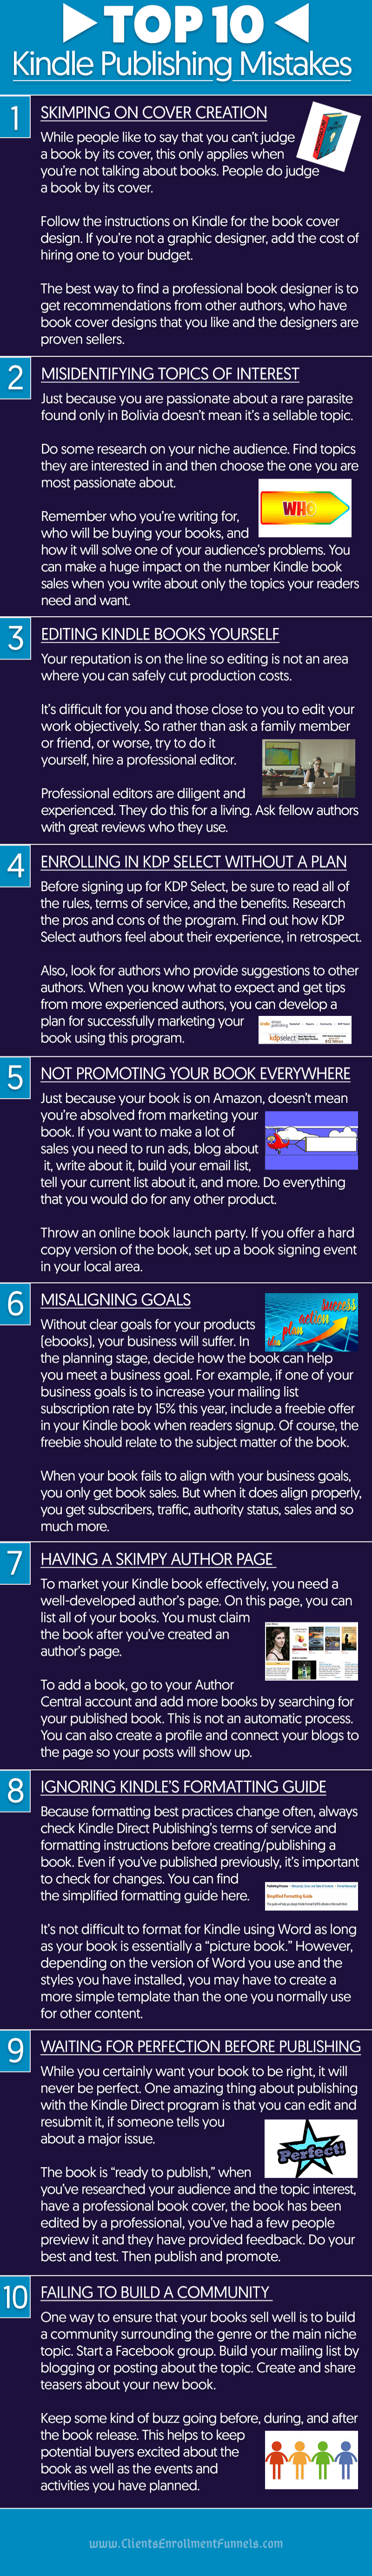 Top 10 Kindle Publishing Mistakes - Infographic